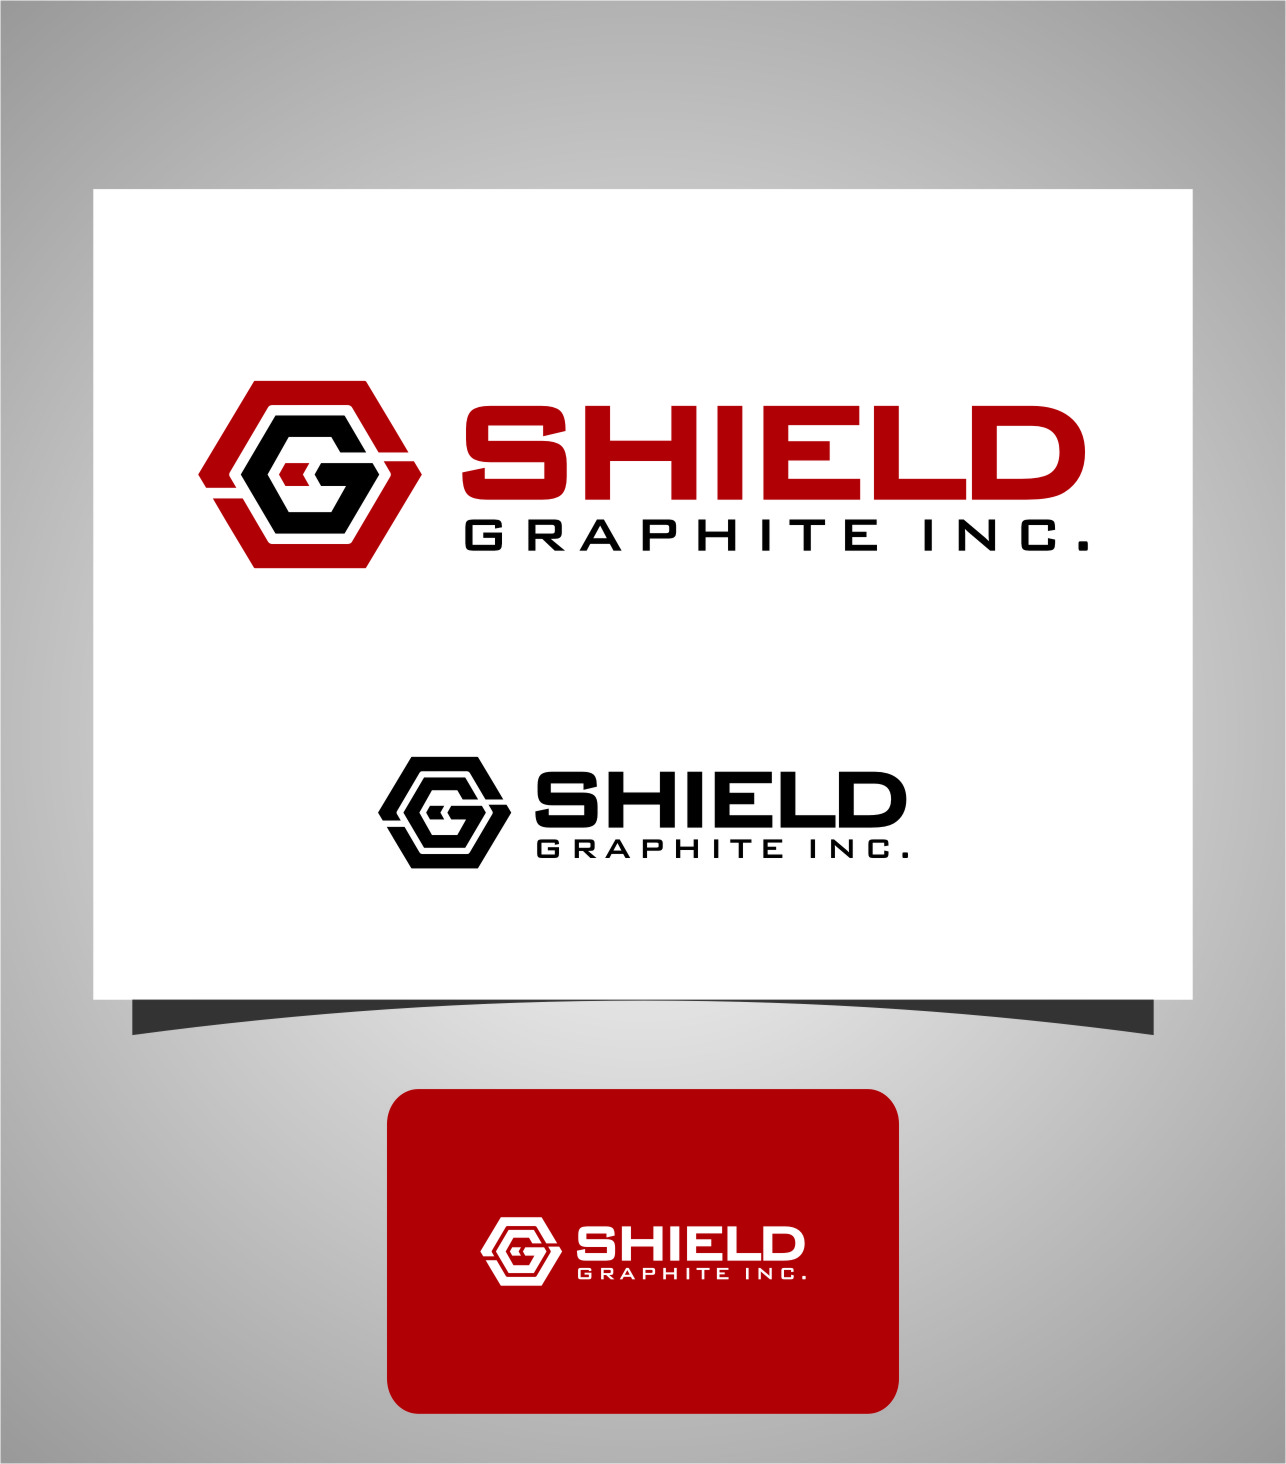 Logo Design by Ngepet_art - Entry No. 156 in the Logo Design Contest Imaginative Logo Design for Shield Graphite Inc..